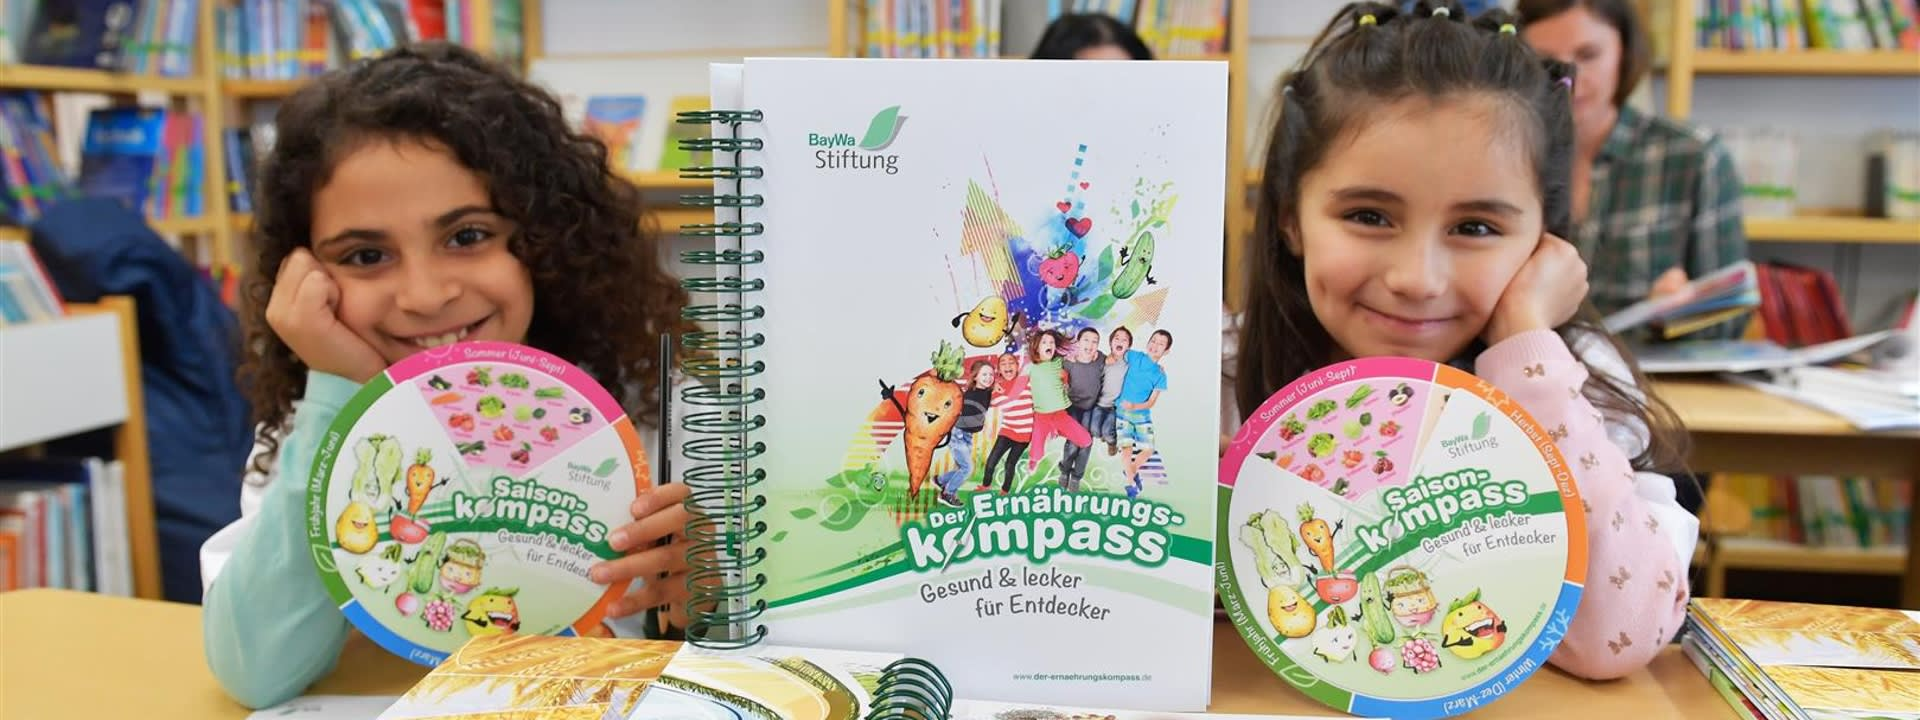 "The teaching and action book ""Der Ernährungskompass"" of the BayWa Foundation shows primary school children the colourful world of healthy nutrition."